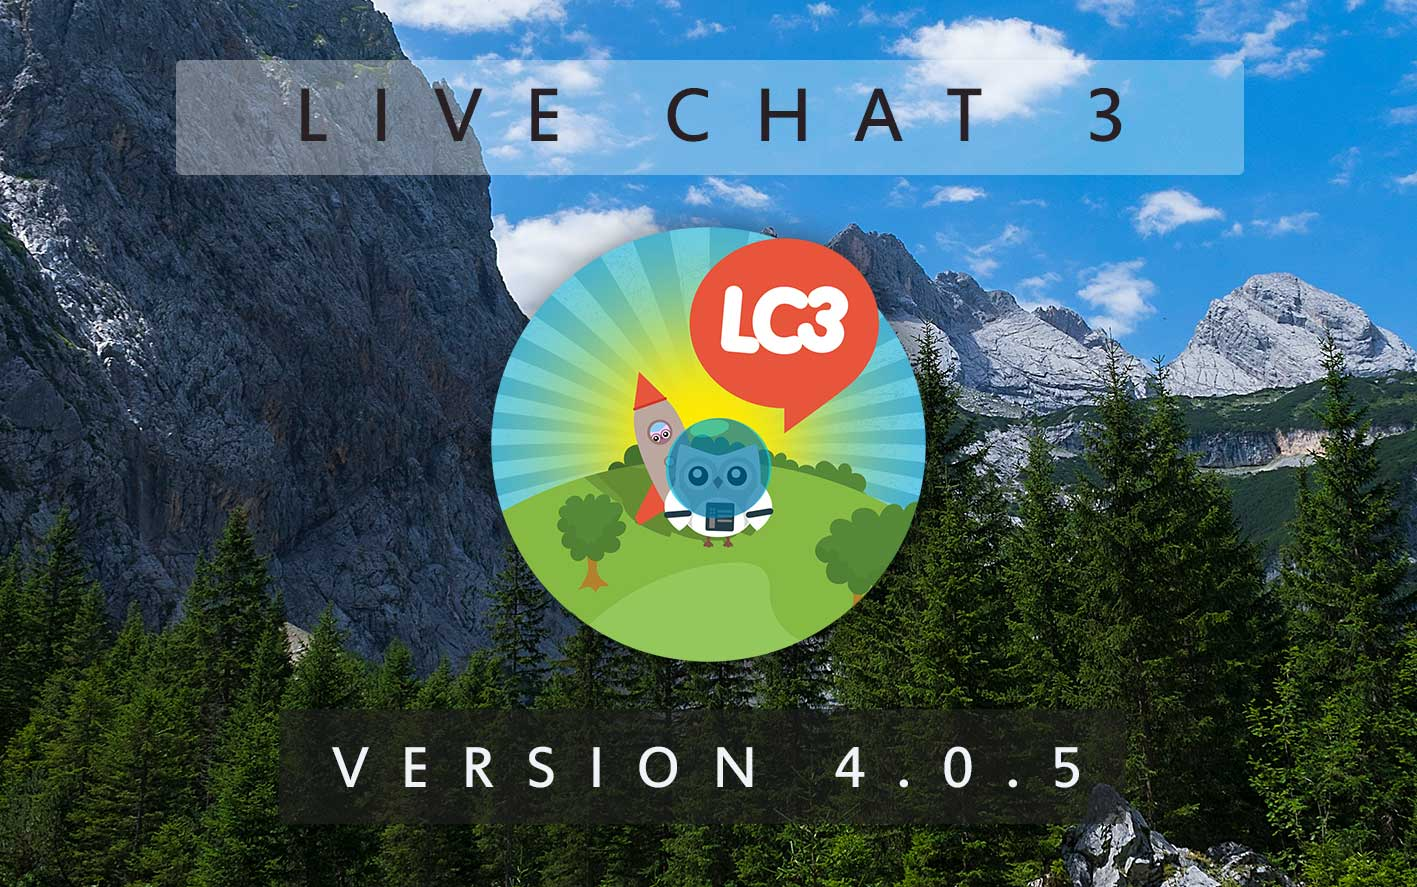 Live Chat 3 - Version 4.0.5